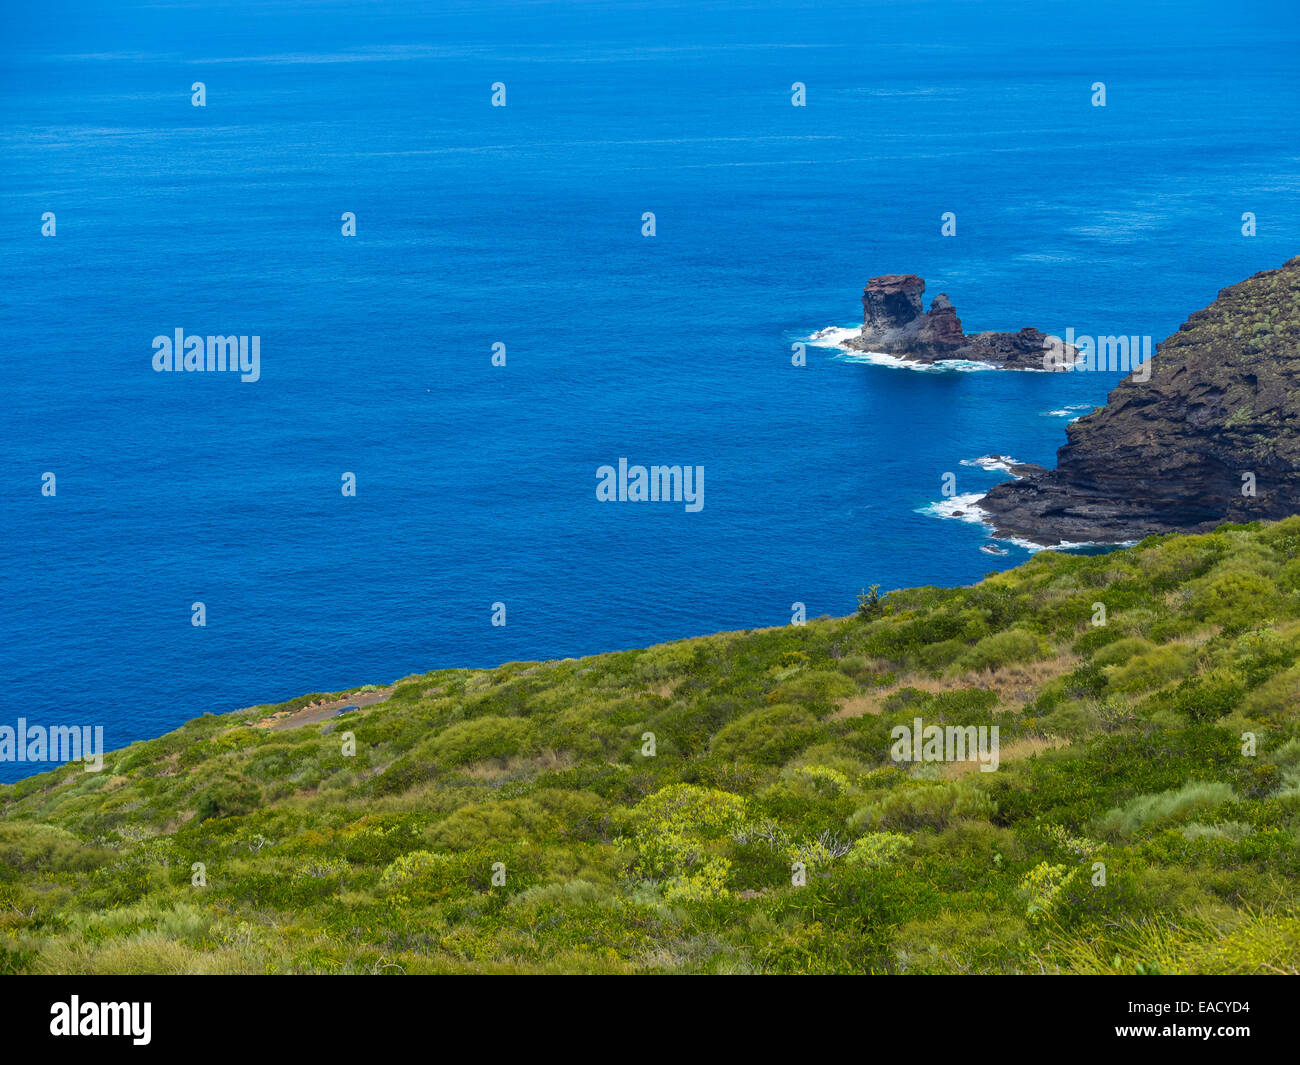 Les falaises, près de Garafia, Punta del Puerto Viejo, La Palma, Canary Islands, Spain Photo Stock